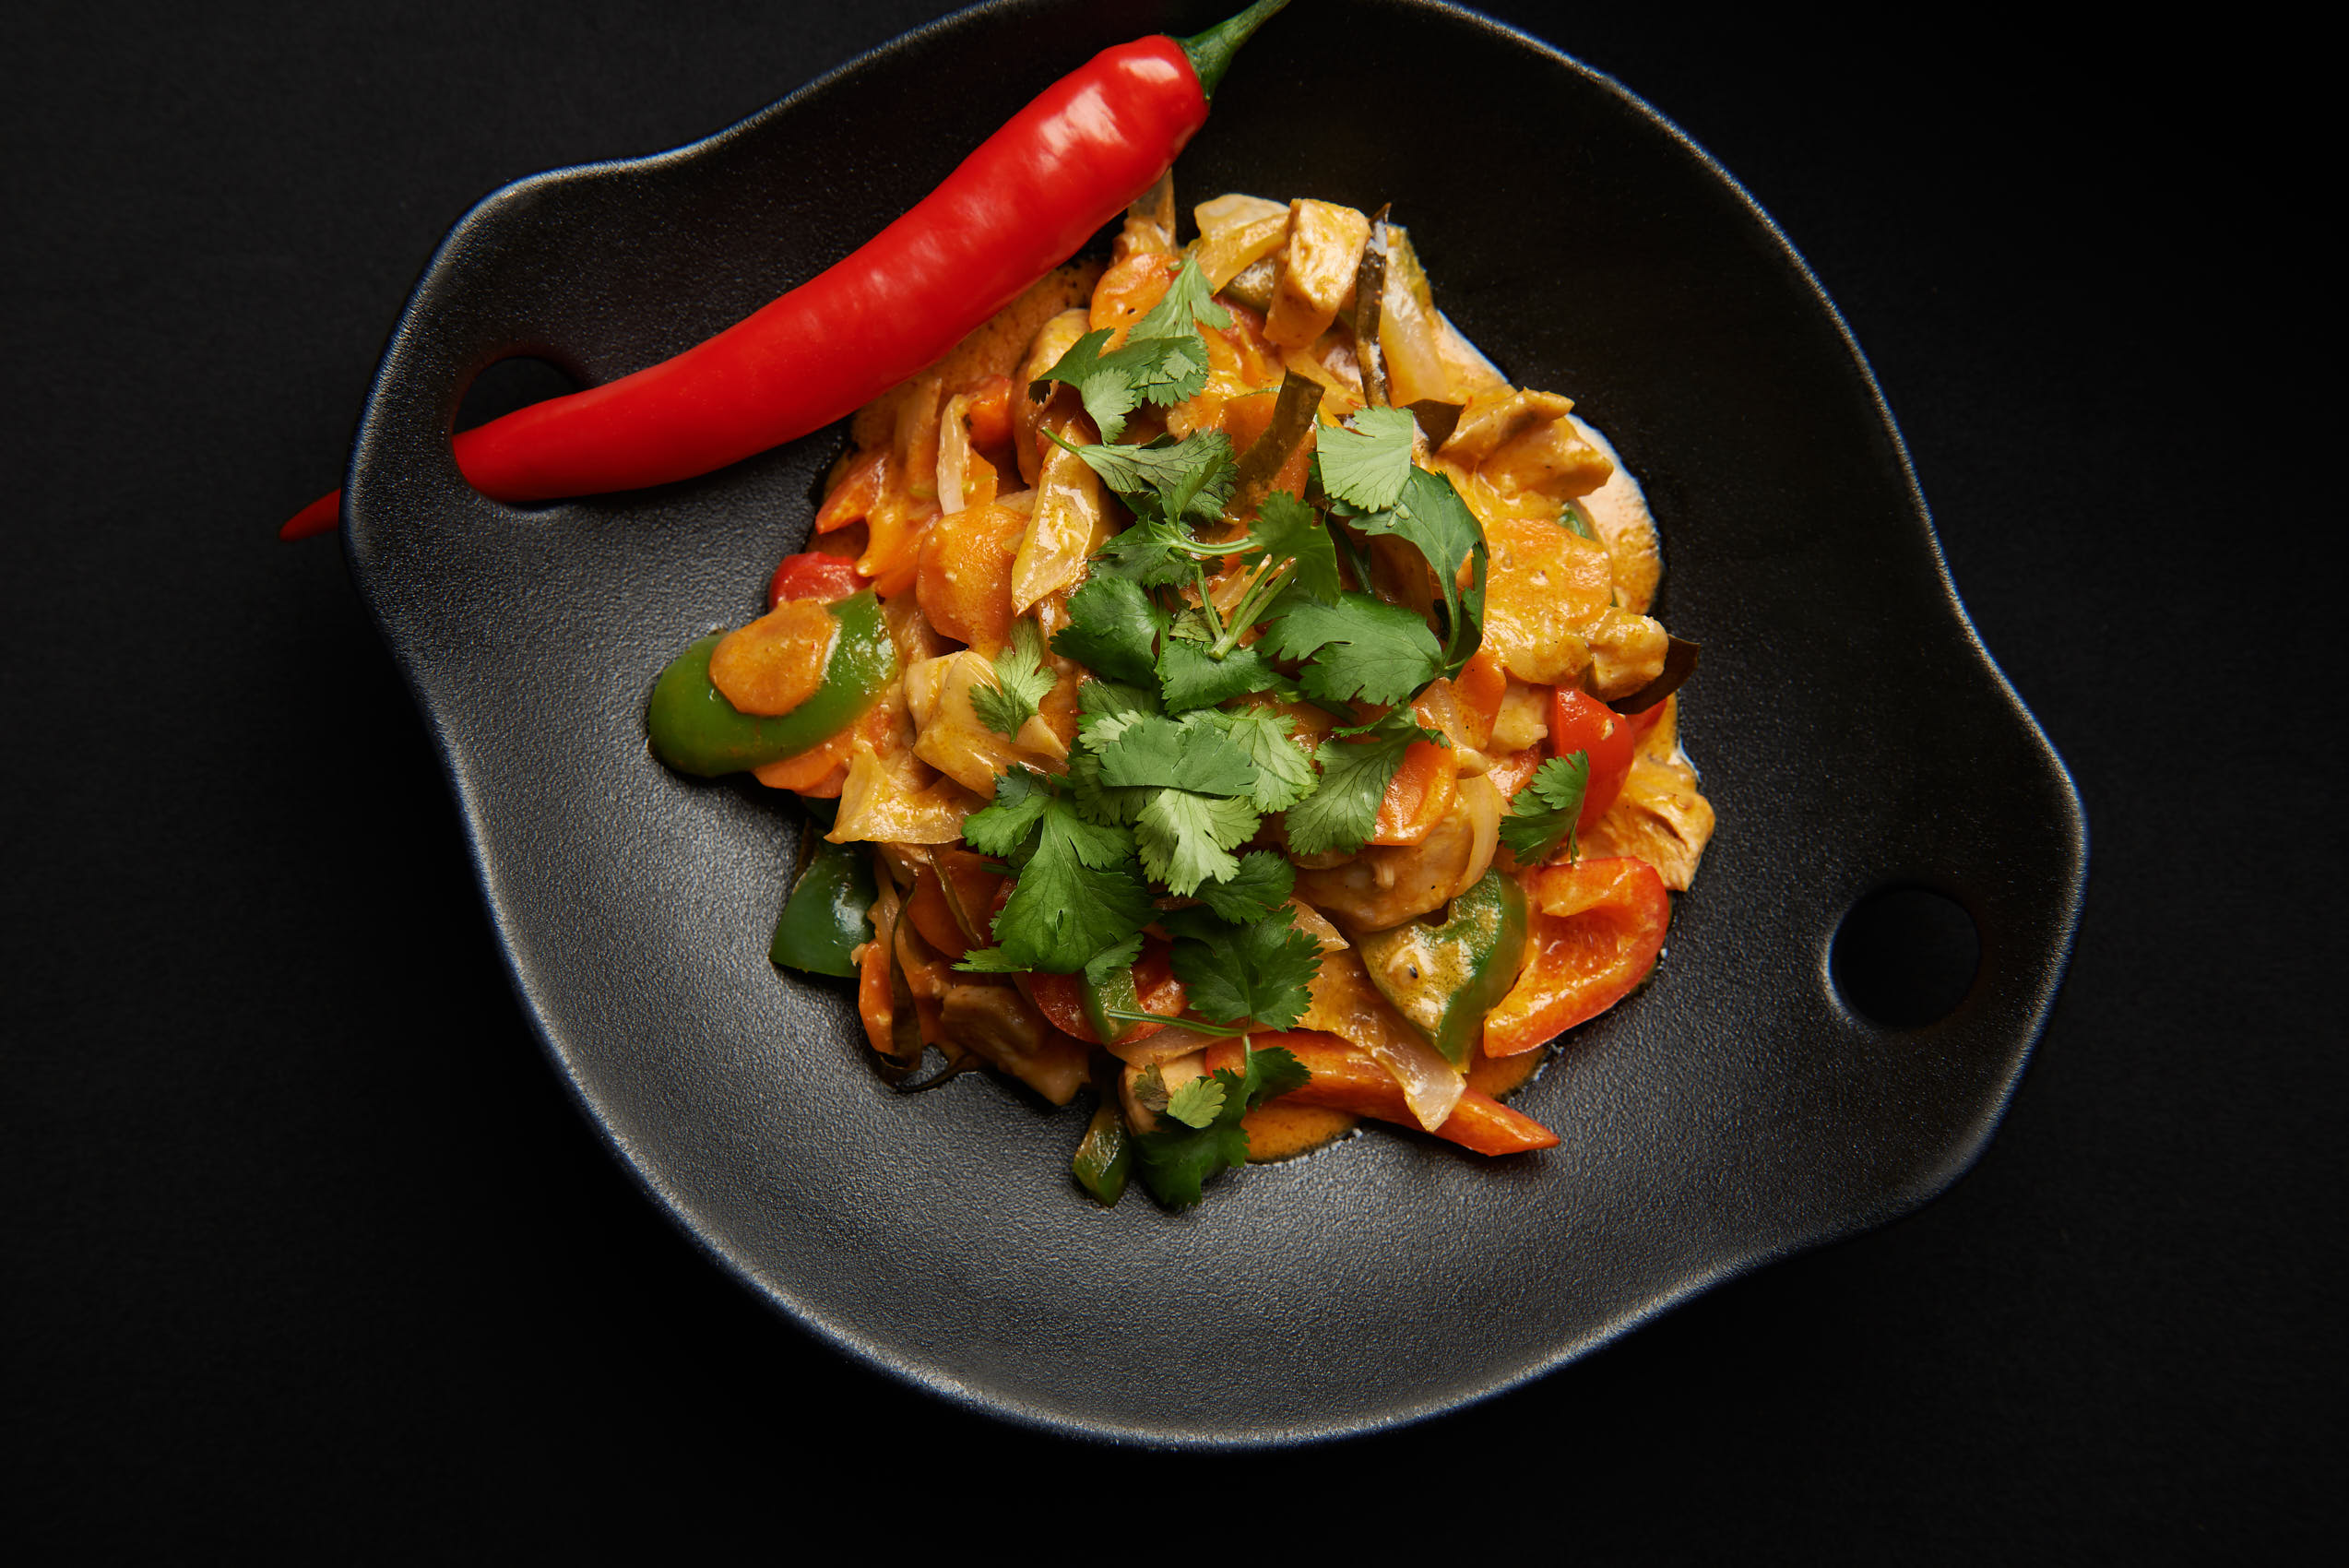 Thai curry chicken with chili and vegetables photo by Marcel Tiedje